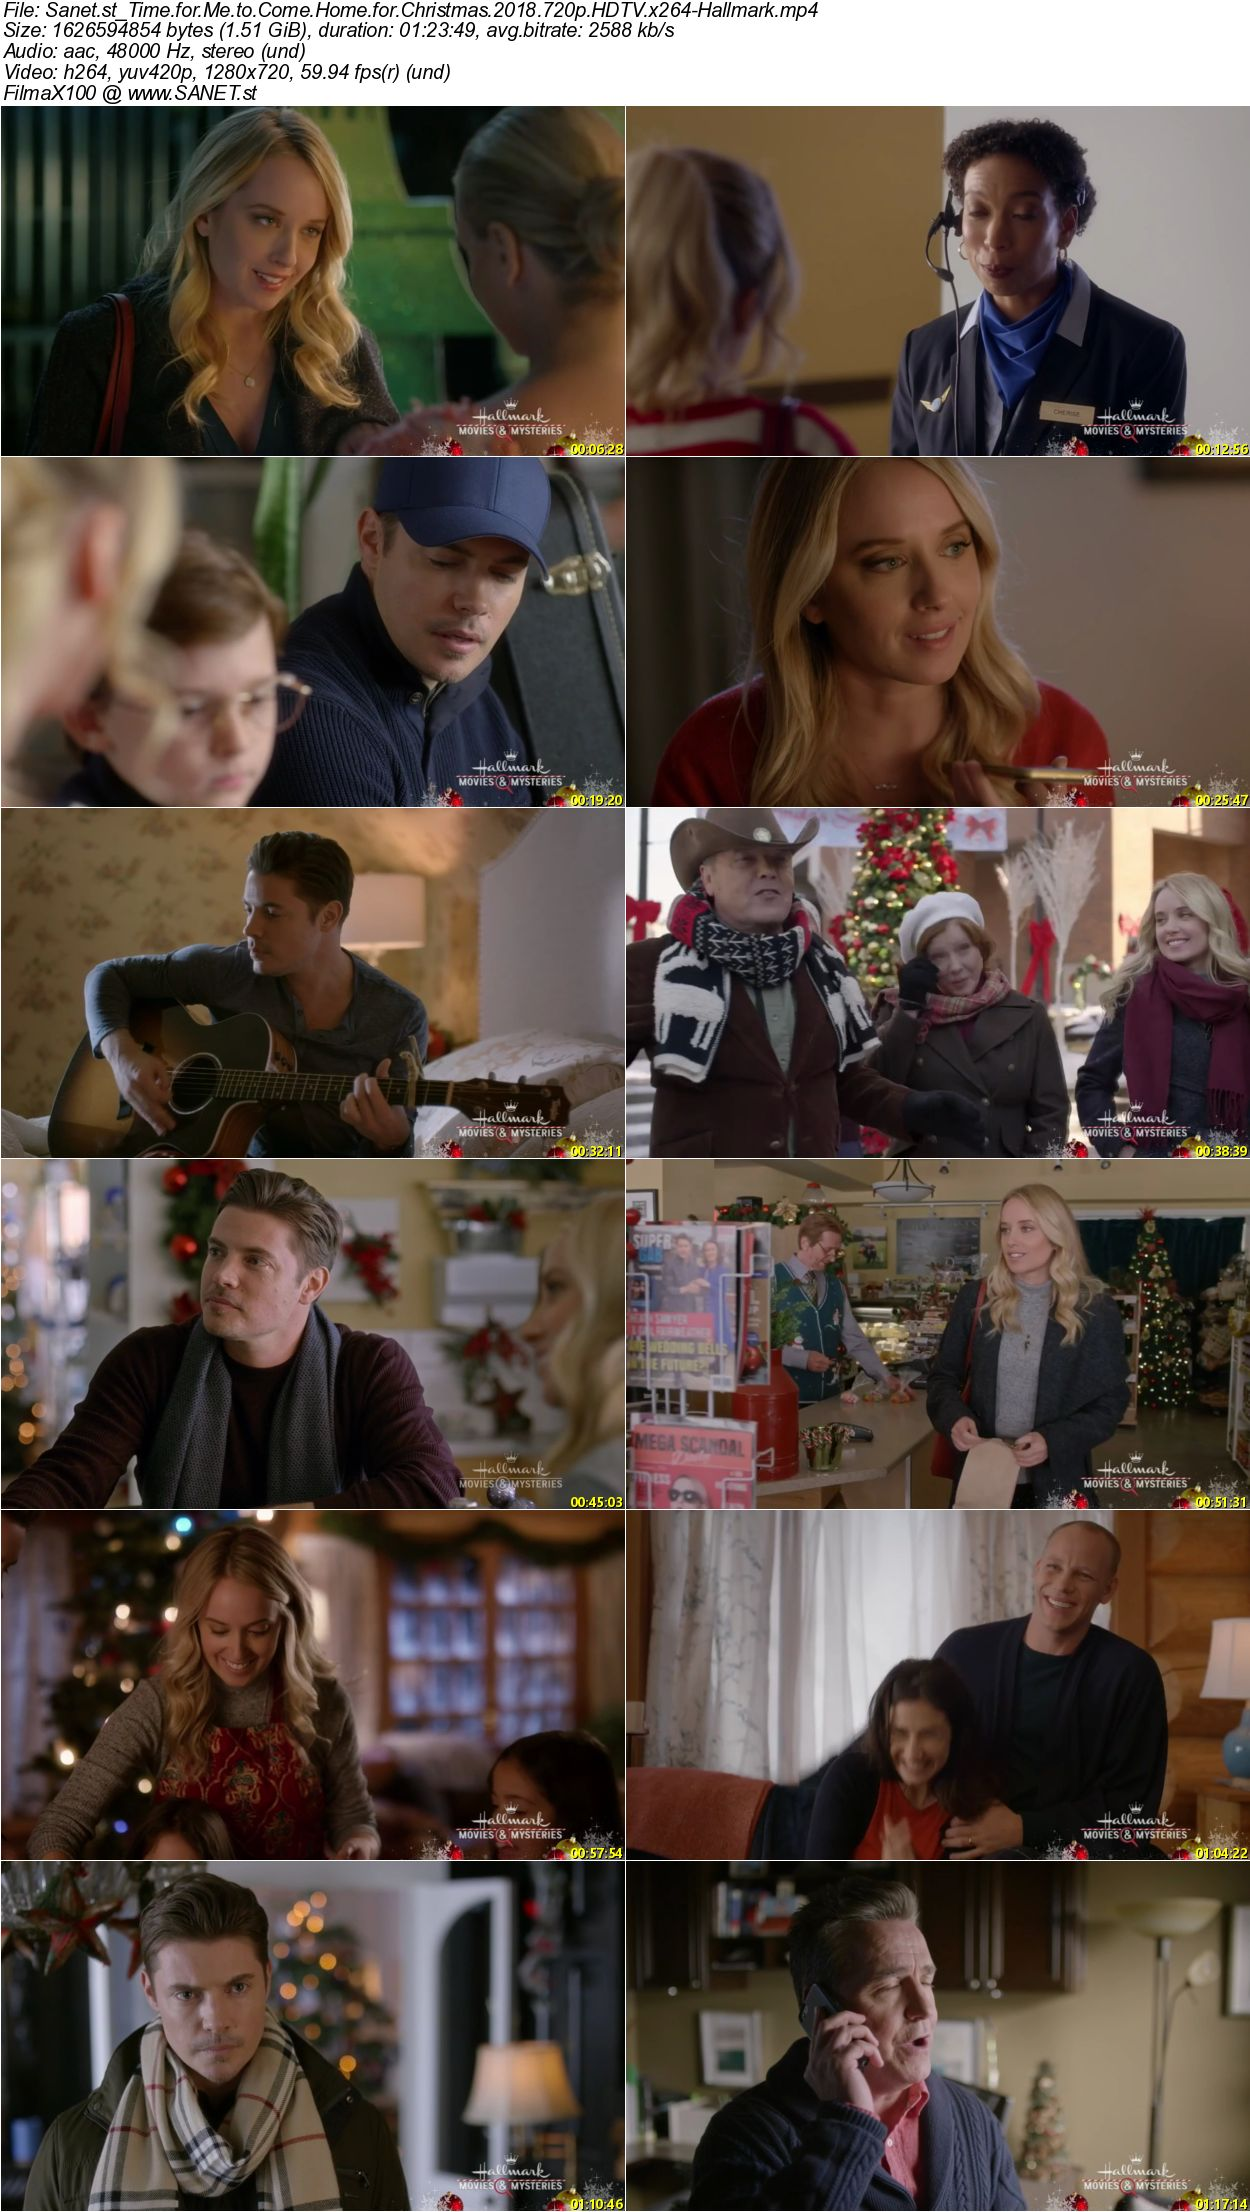 Time For Me To Come Home For Christmas Hallmark.Download Time For Me To Come Home For Christmas 2018 720p